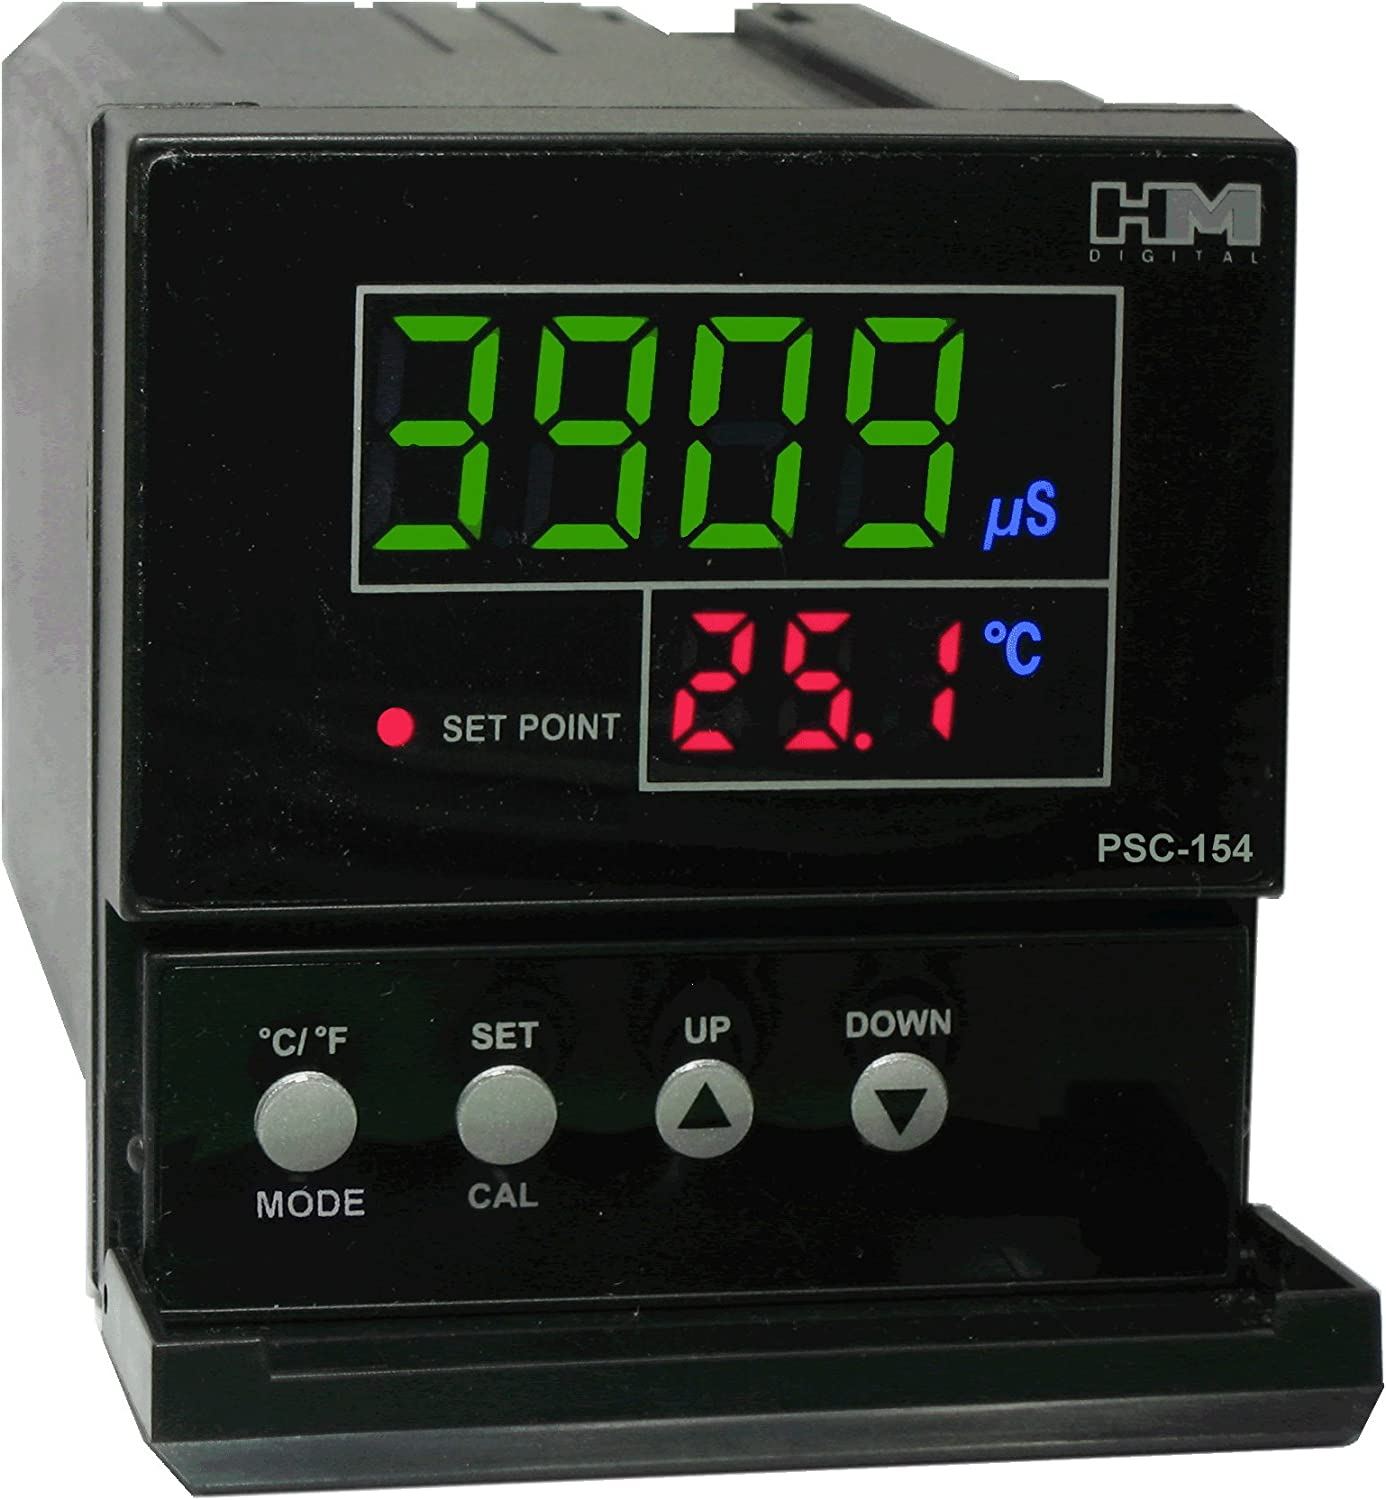 Direct store HM Digital PSC-154 TDS EC 4-20mA Controller Output Minneapolis Mall 0-9999 with